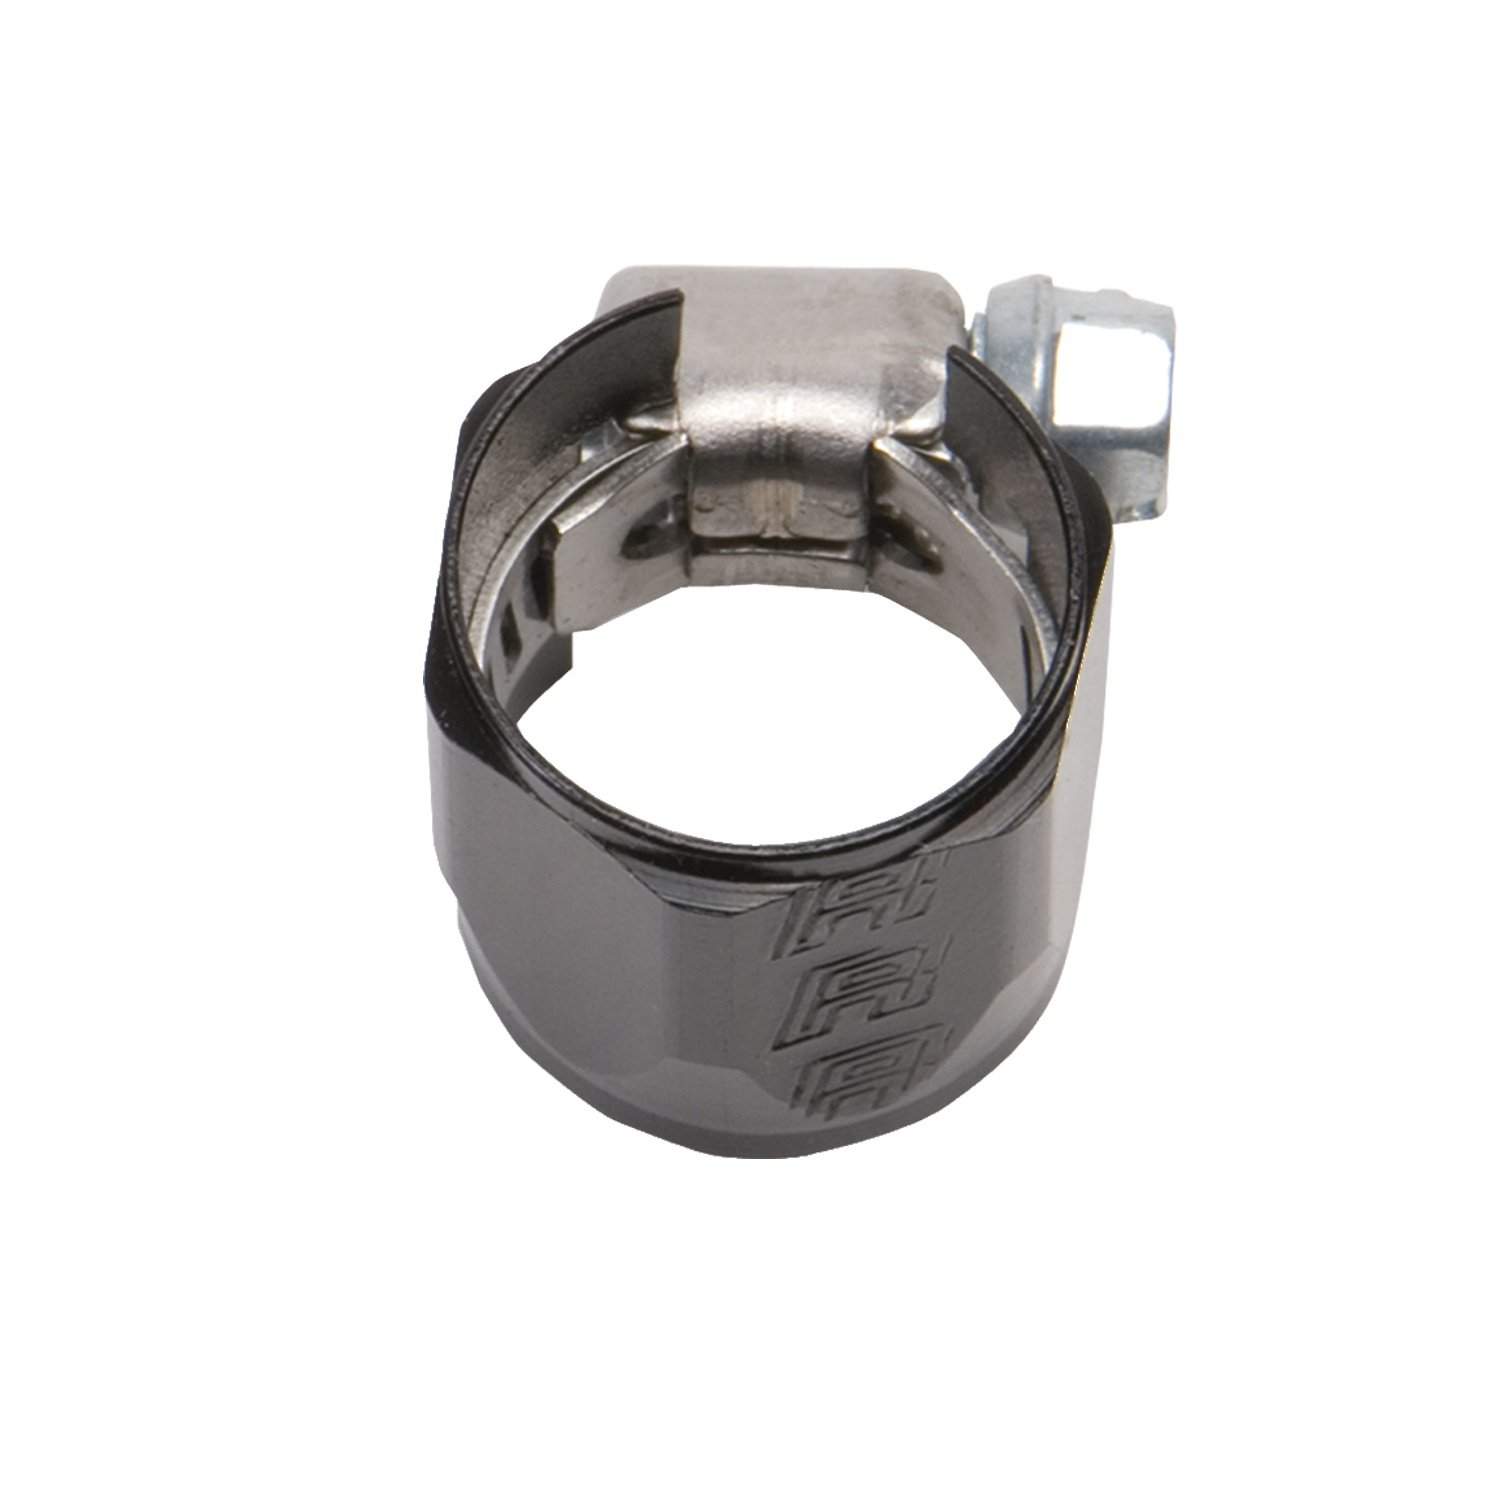 Russell RUS-620273 TUBE SEAL COVER